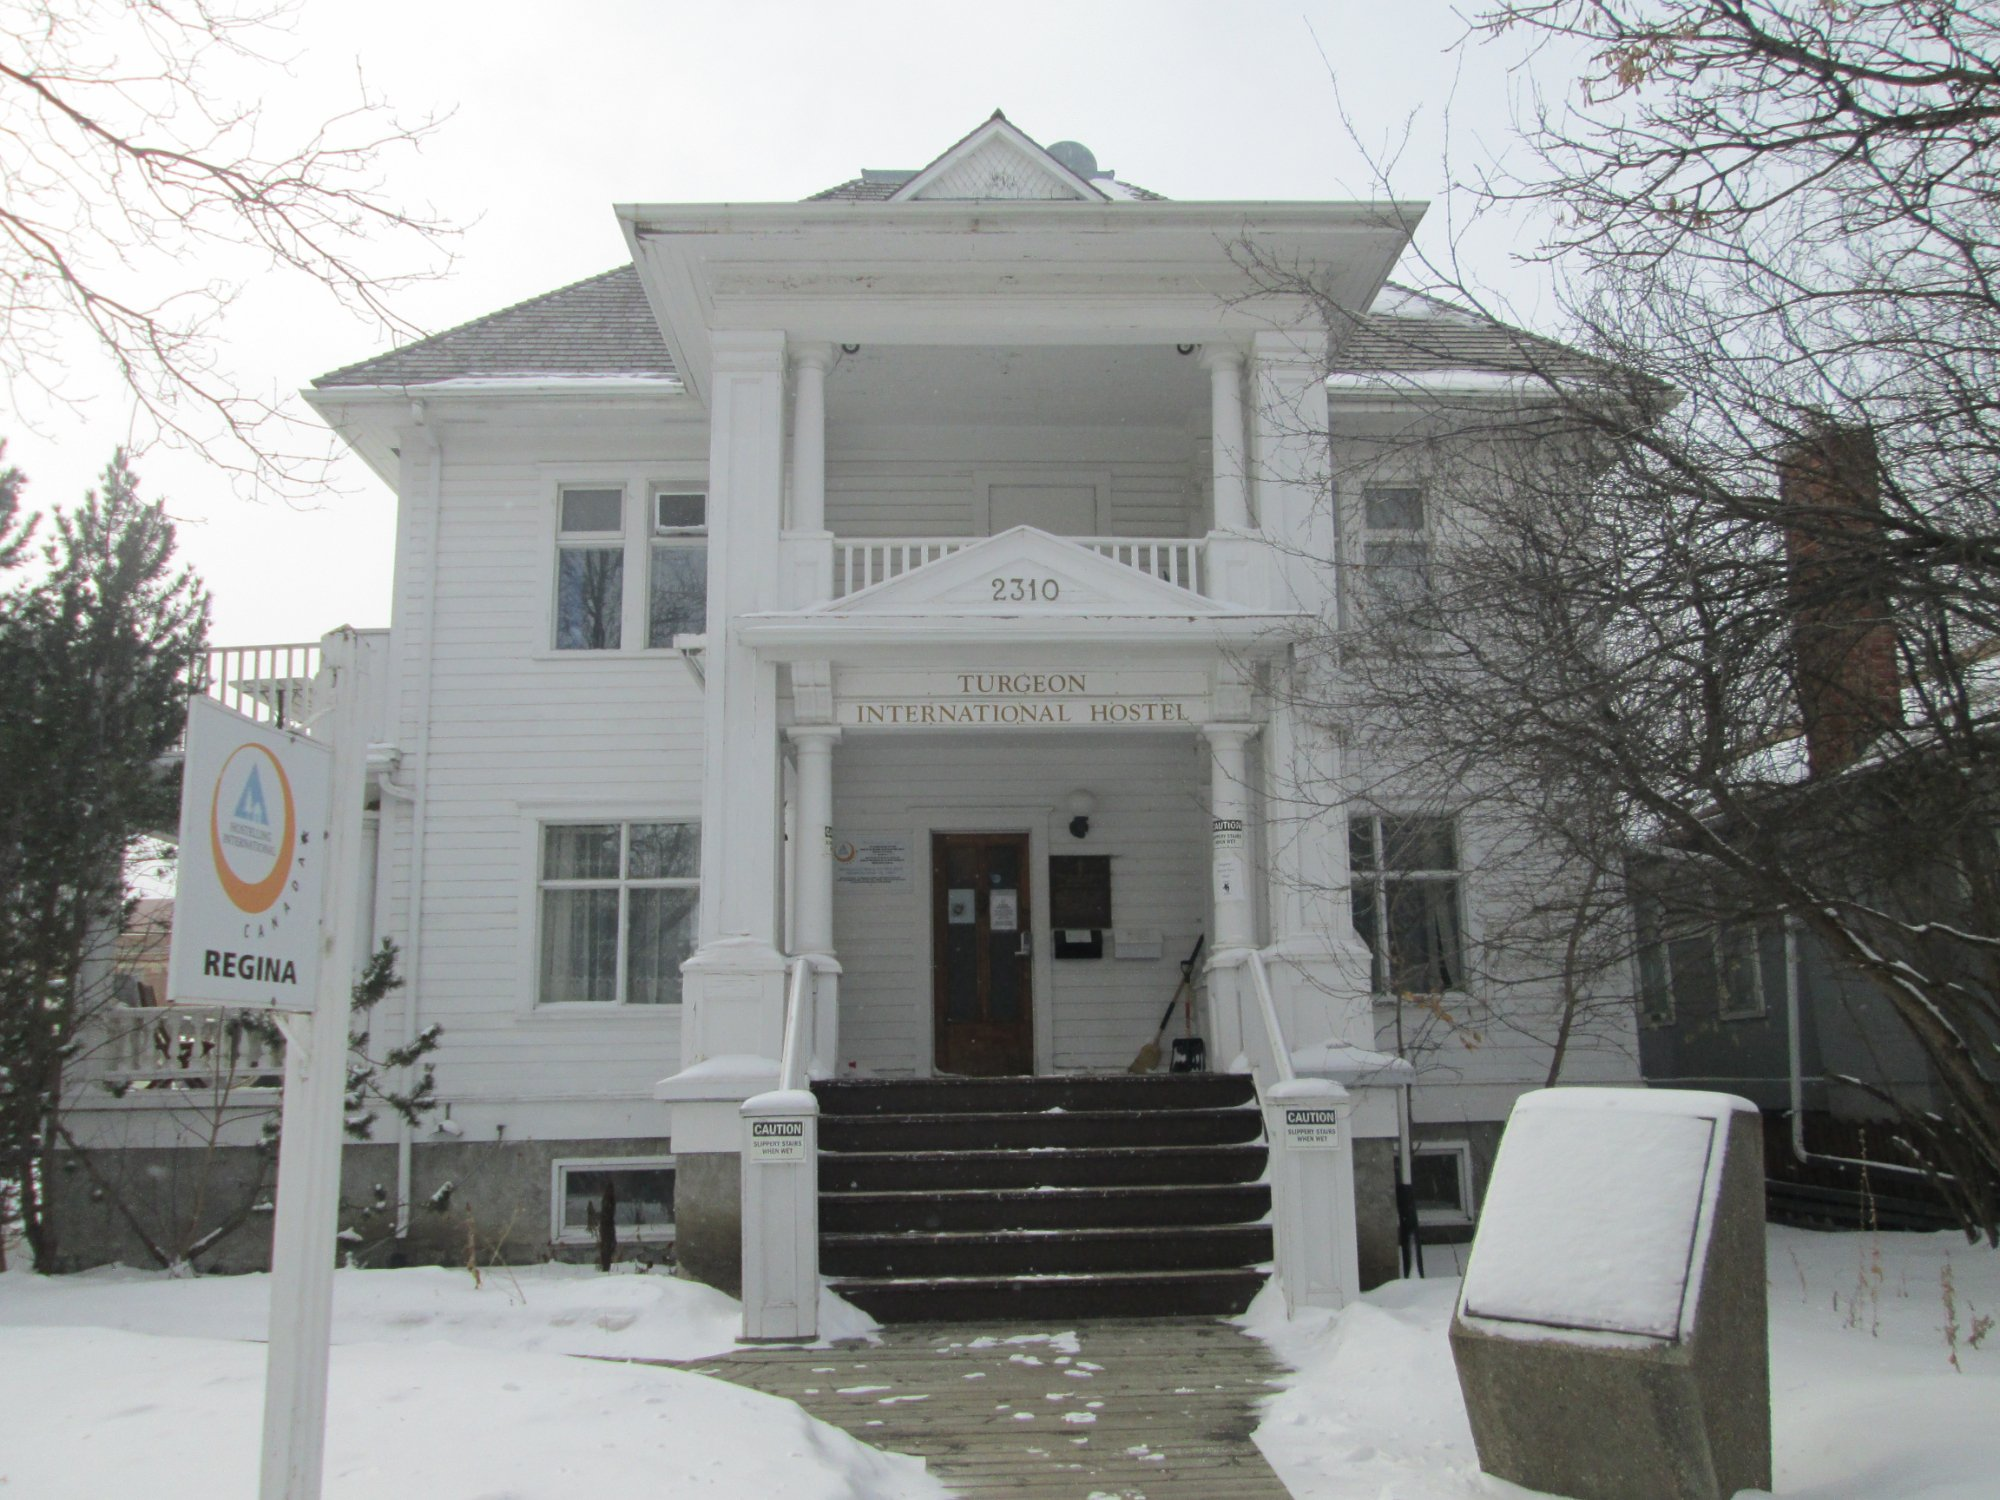 HI Regina - Turgeon International Hostel